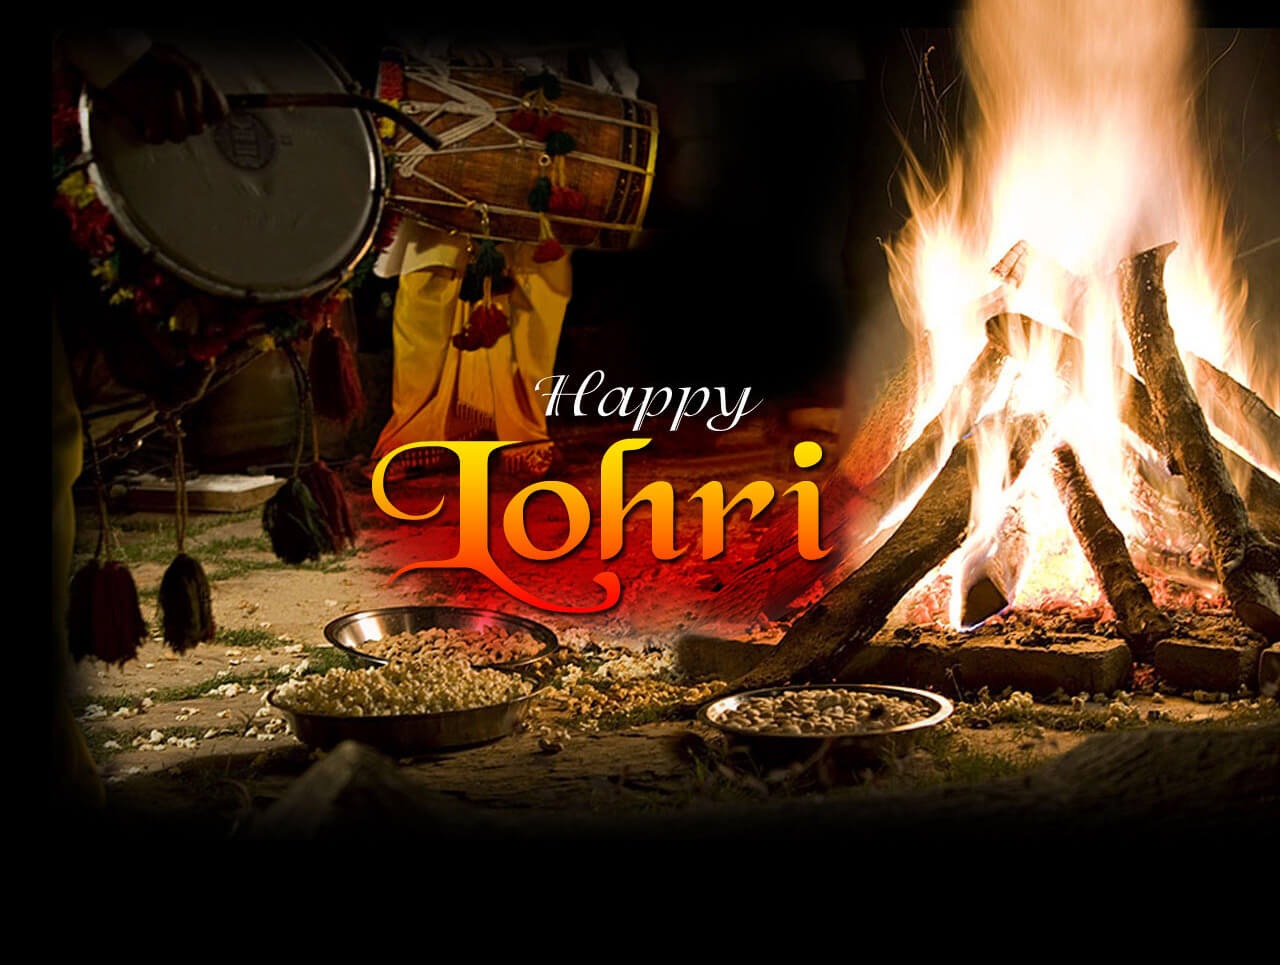 happy lohri - photo #6